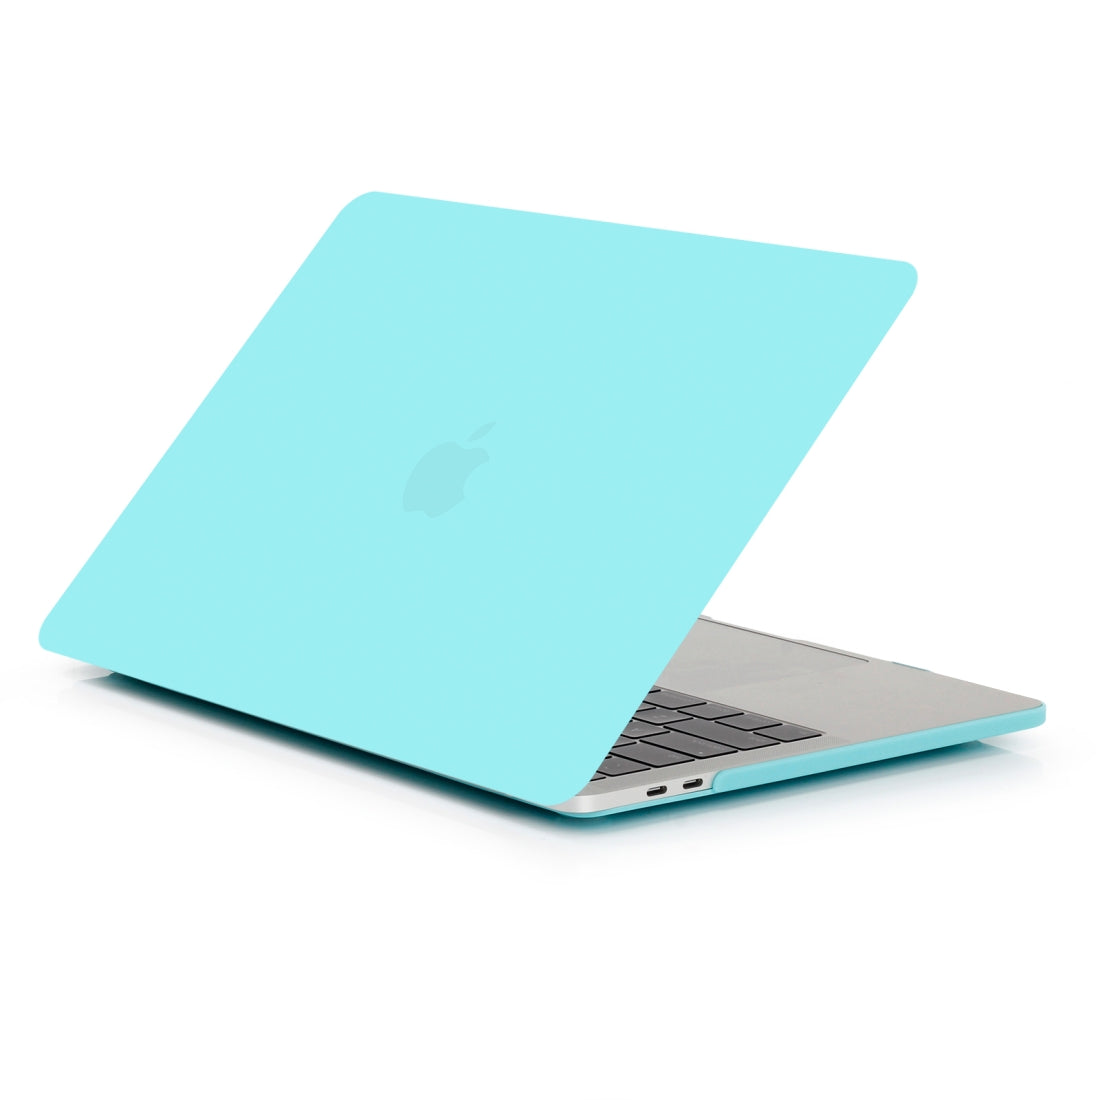 Laptop Frosted Style PC Protective Case for MacBook Pro 15.4 inch A1990 (2018)(Sky Blue)